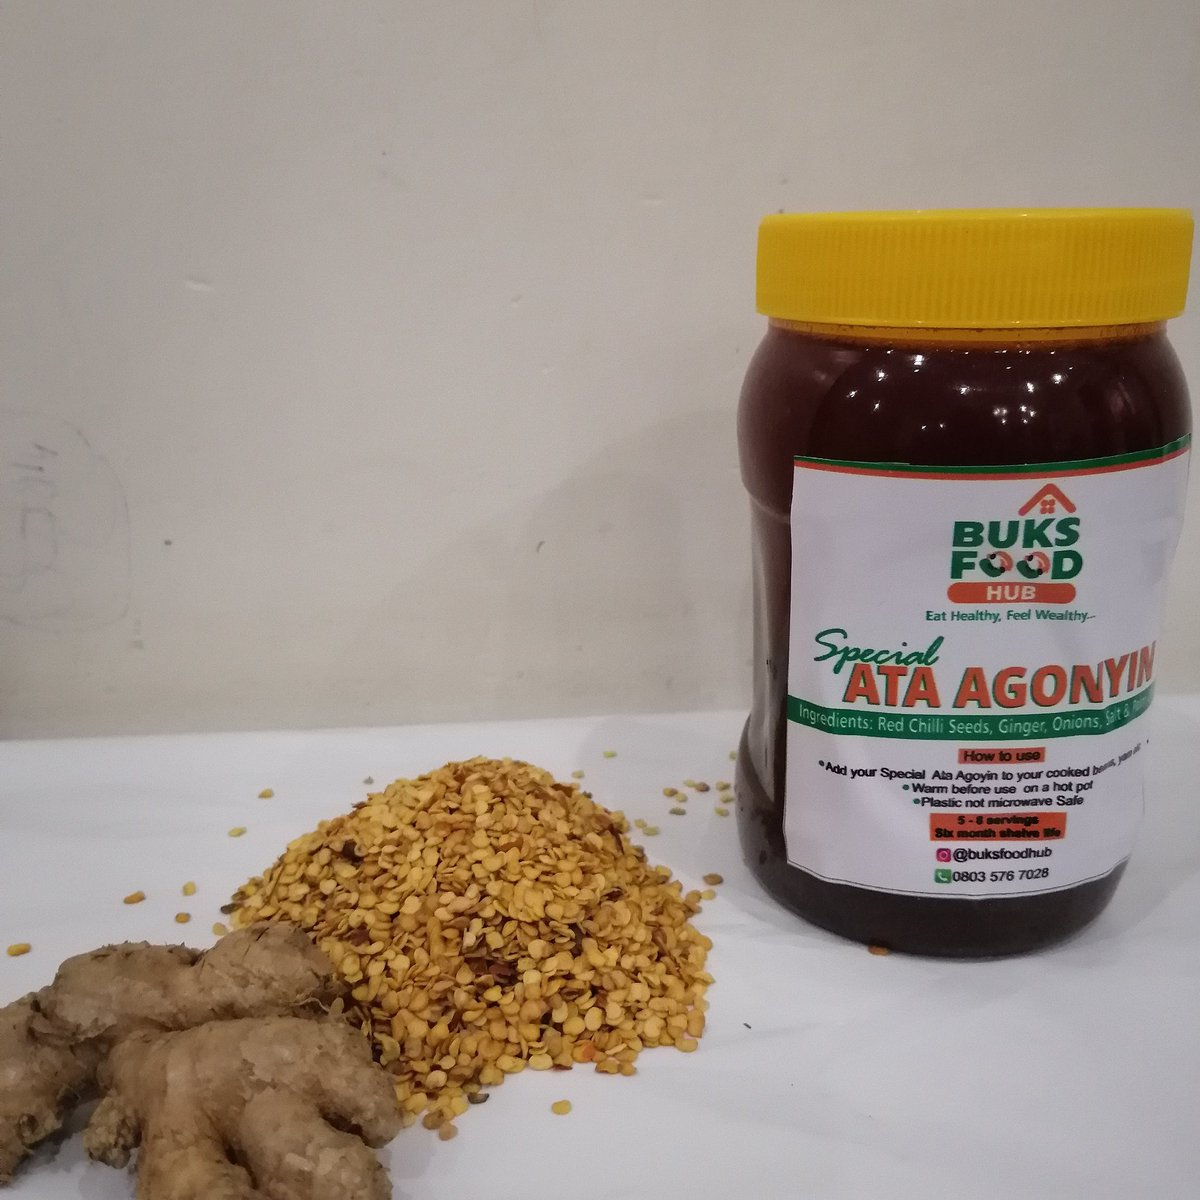 OUR SPECIAL HOME MADE EWA AGANYIN SAUCE ⚪HAS A LONG  SHELF LIFE.  ⚪DONT COOK AGAIN ⚪5 TO 8 SERVINGS  ⚪DONT PUT JAR IN THE MICROWAVE 🚫  ALL YOU NEED  DO IS ADD THE SAUCE TO YOUR COOKED  BEANS... THAT'S AMAZING RIGHT?  THIS JAR IS ₦2,000 NAIRA ONLY #FOODIE #foodlovers